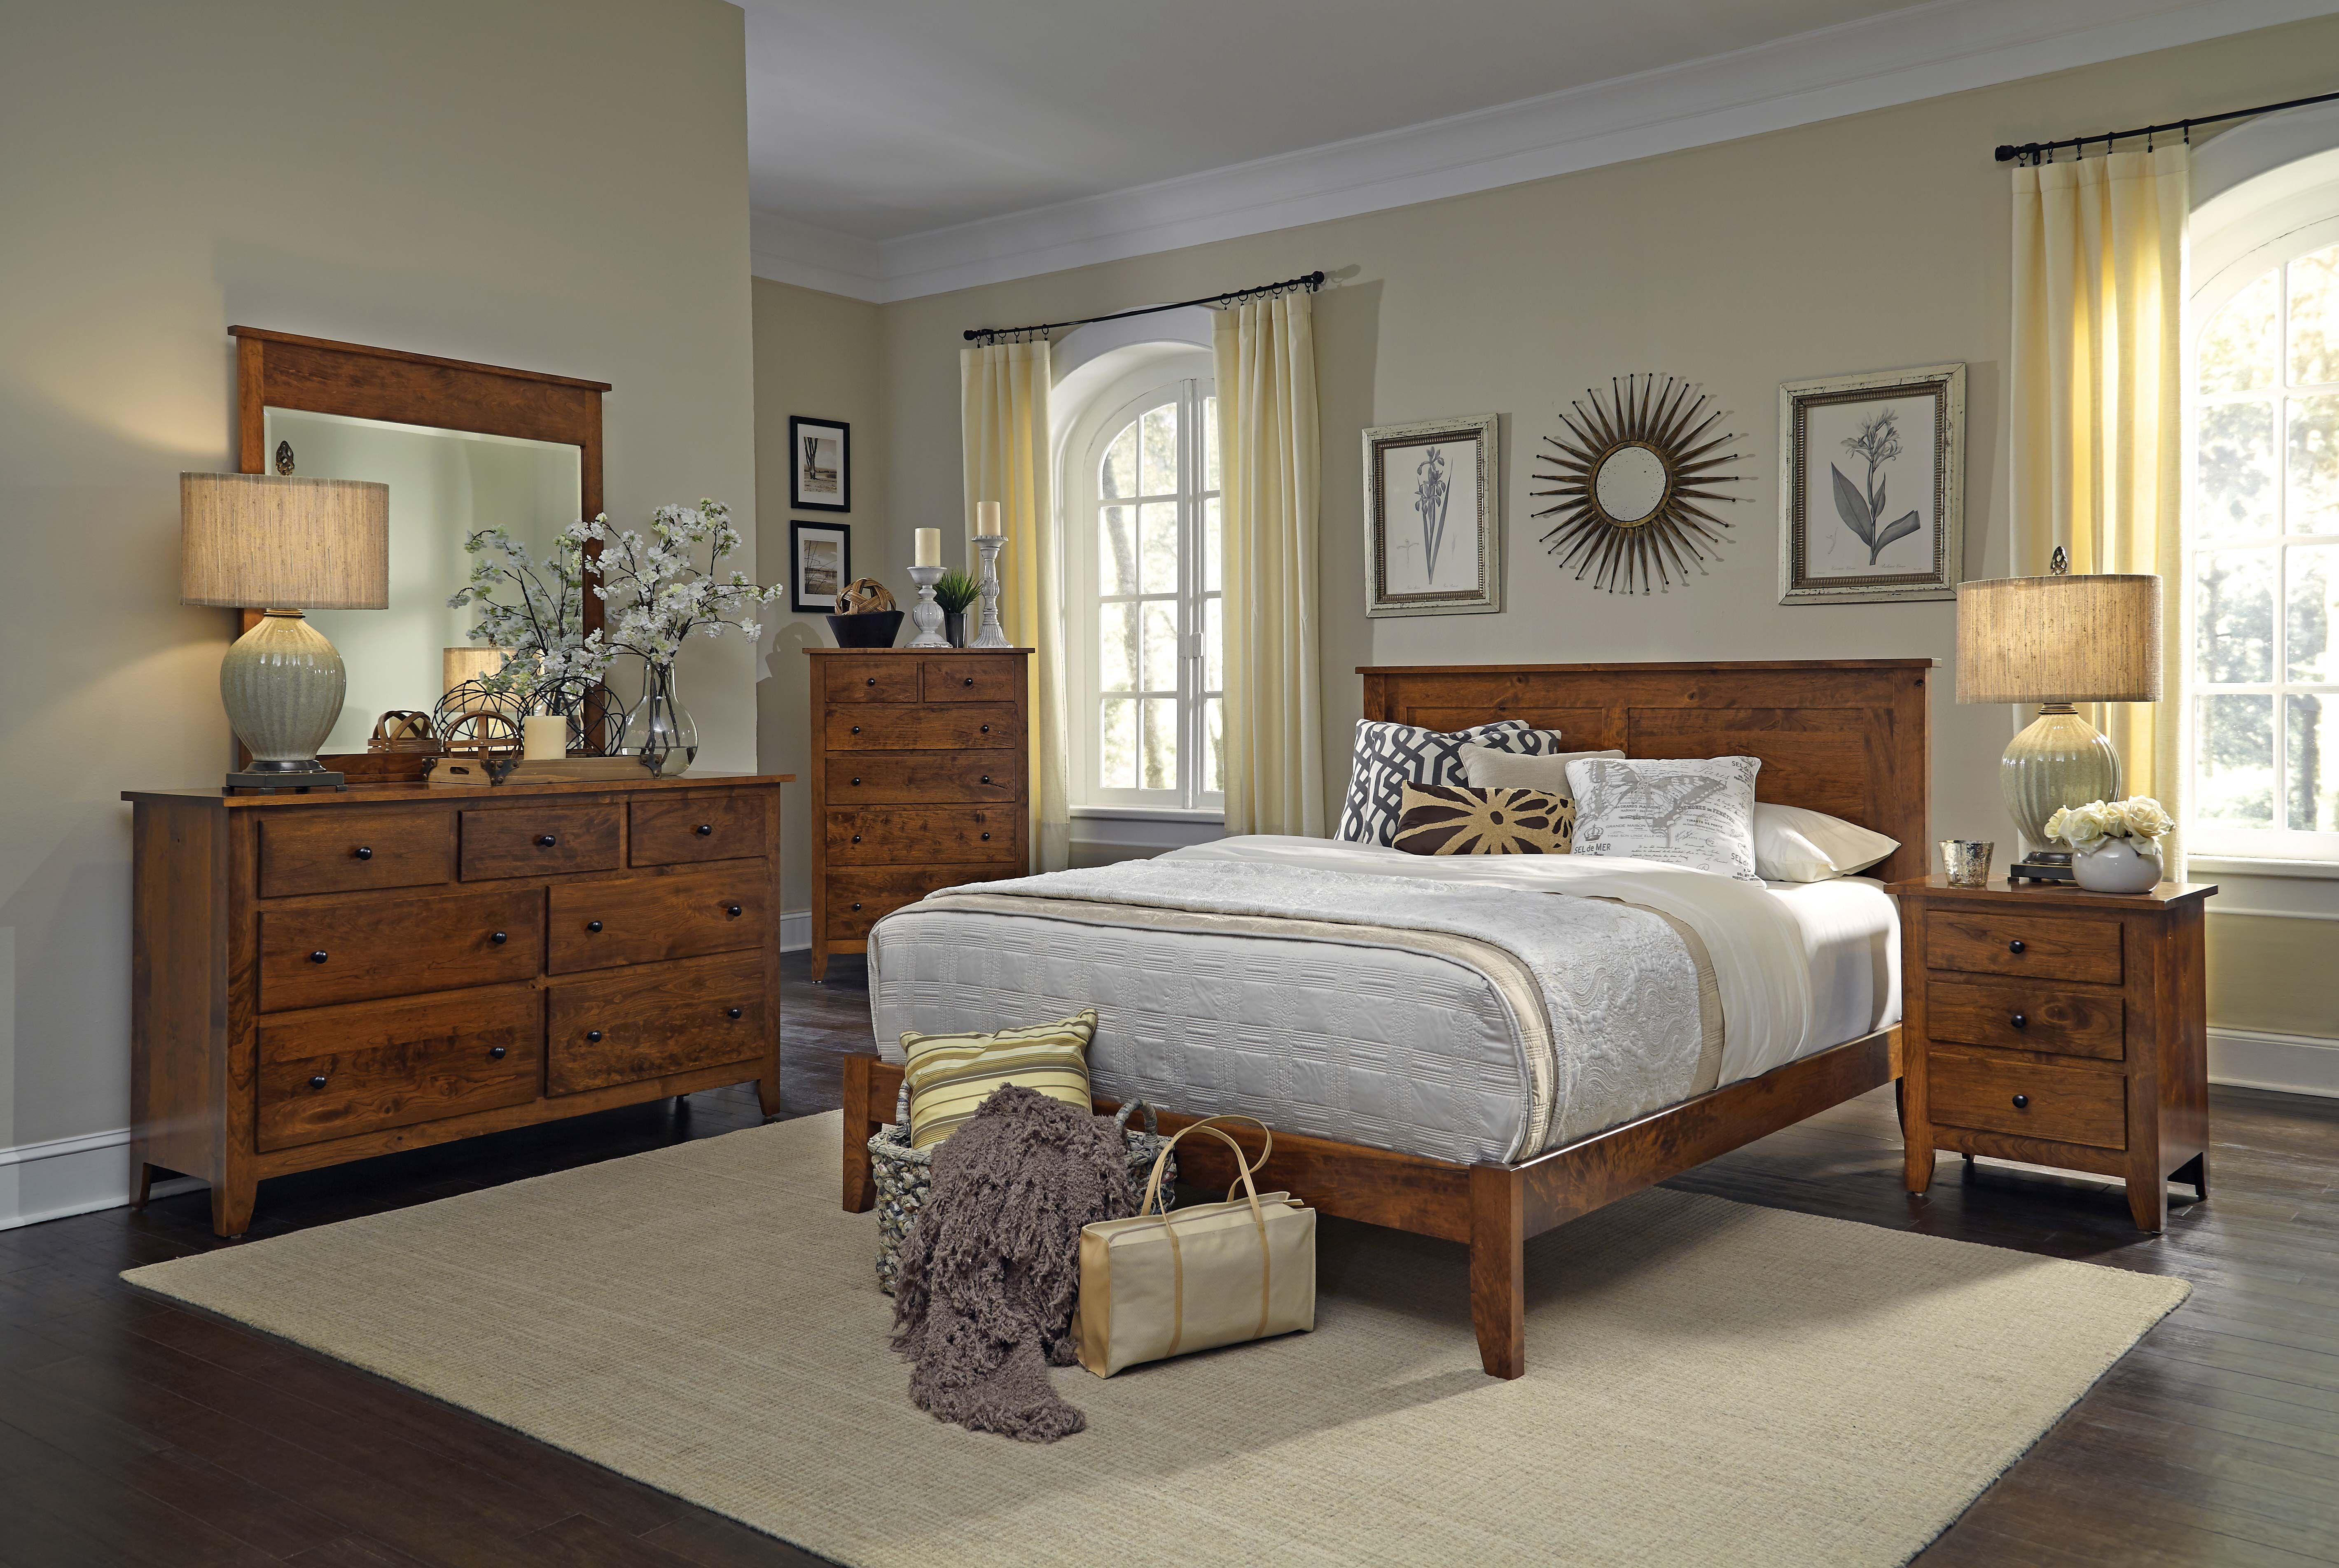 Bedroom Furniture Small Scale